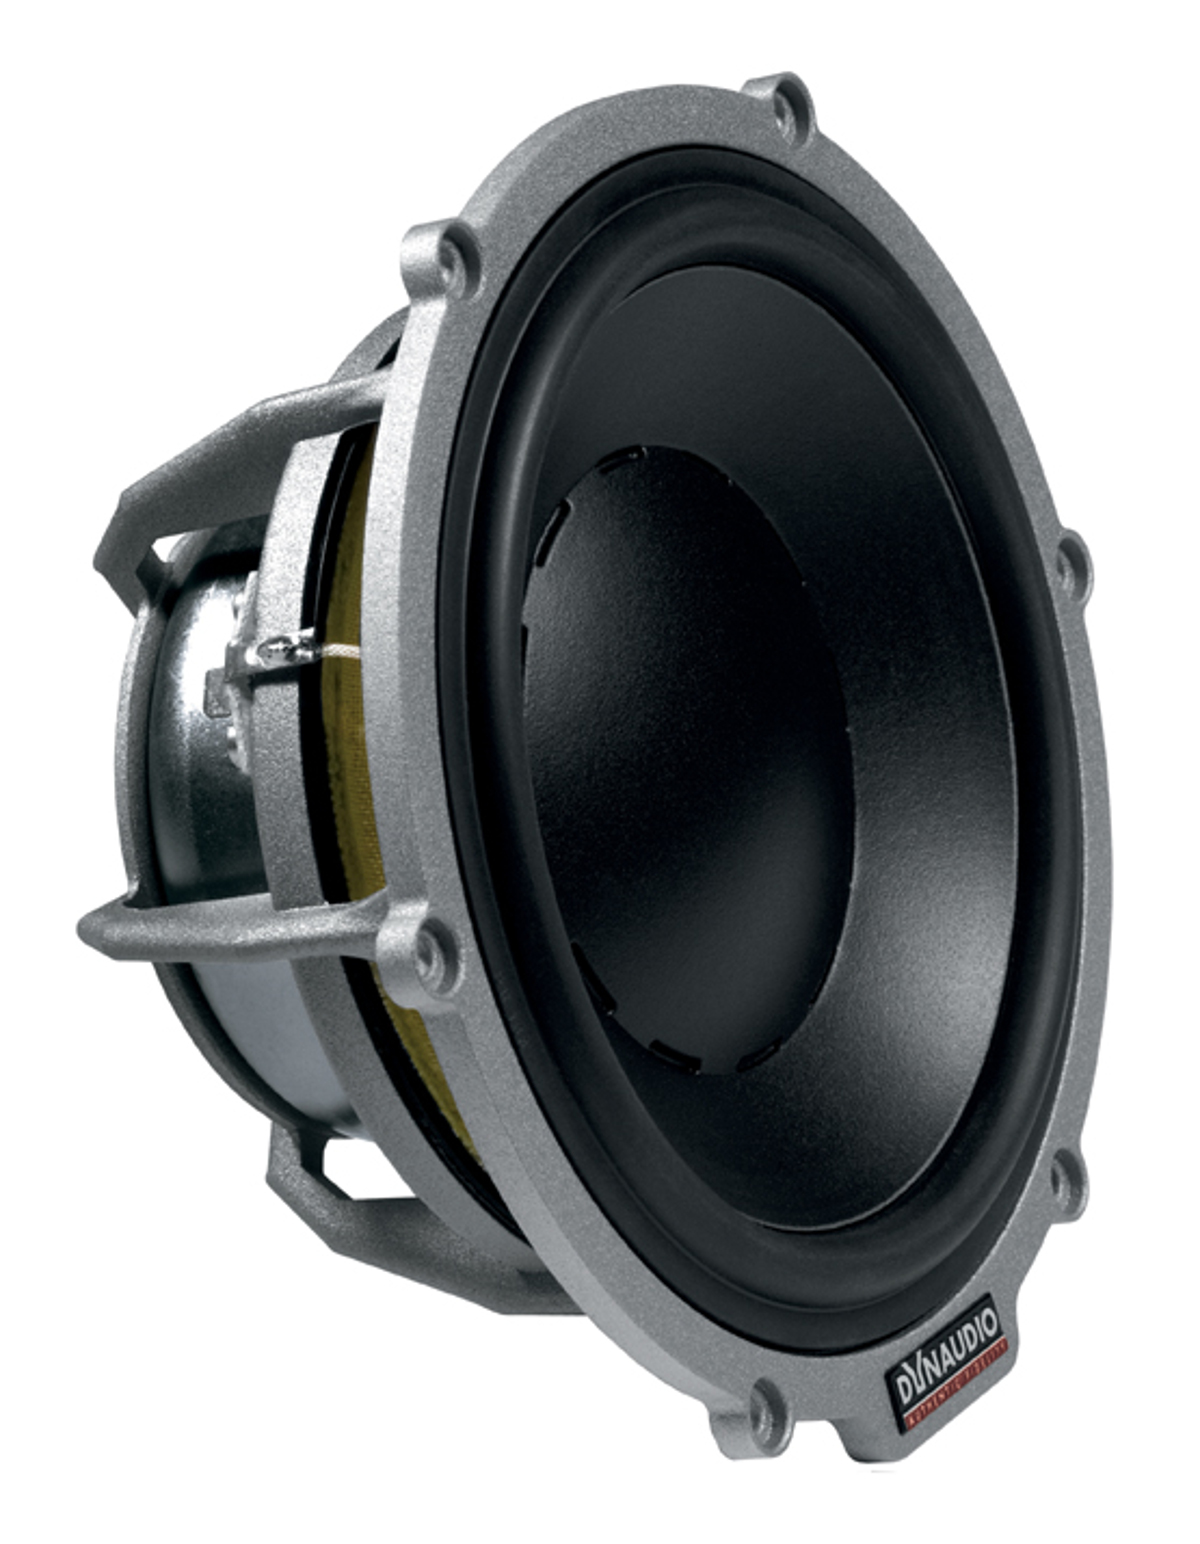 Dynaudio Car Speakers Reviews